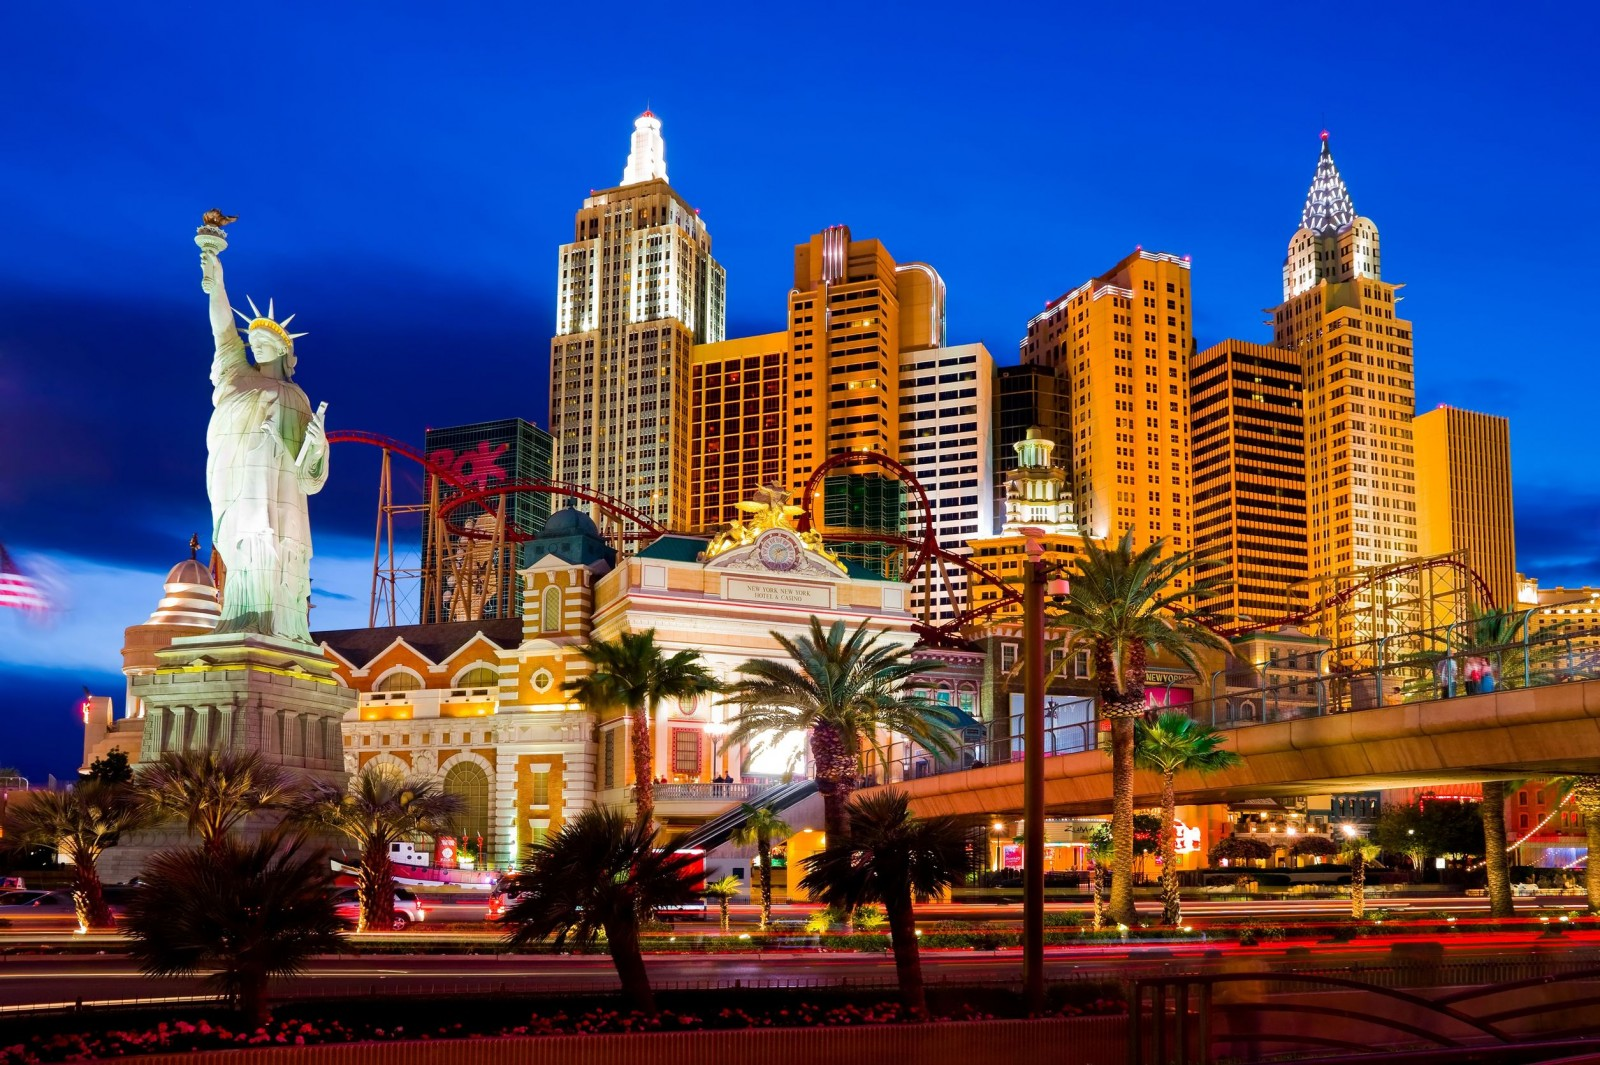 Tour Du Lịch Newyork – Philadelphia - Washington D.C - Los Angeles – Las Vegas